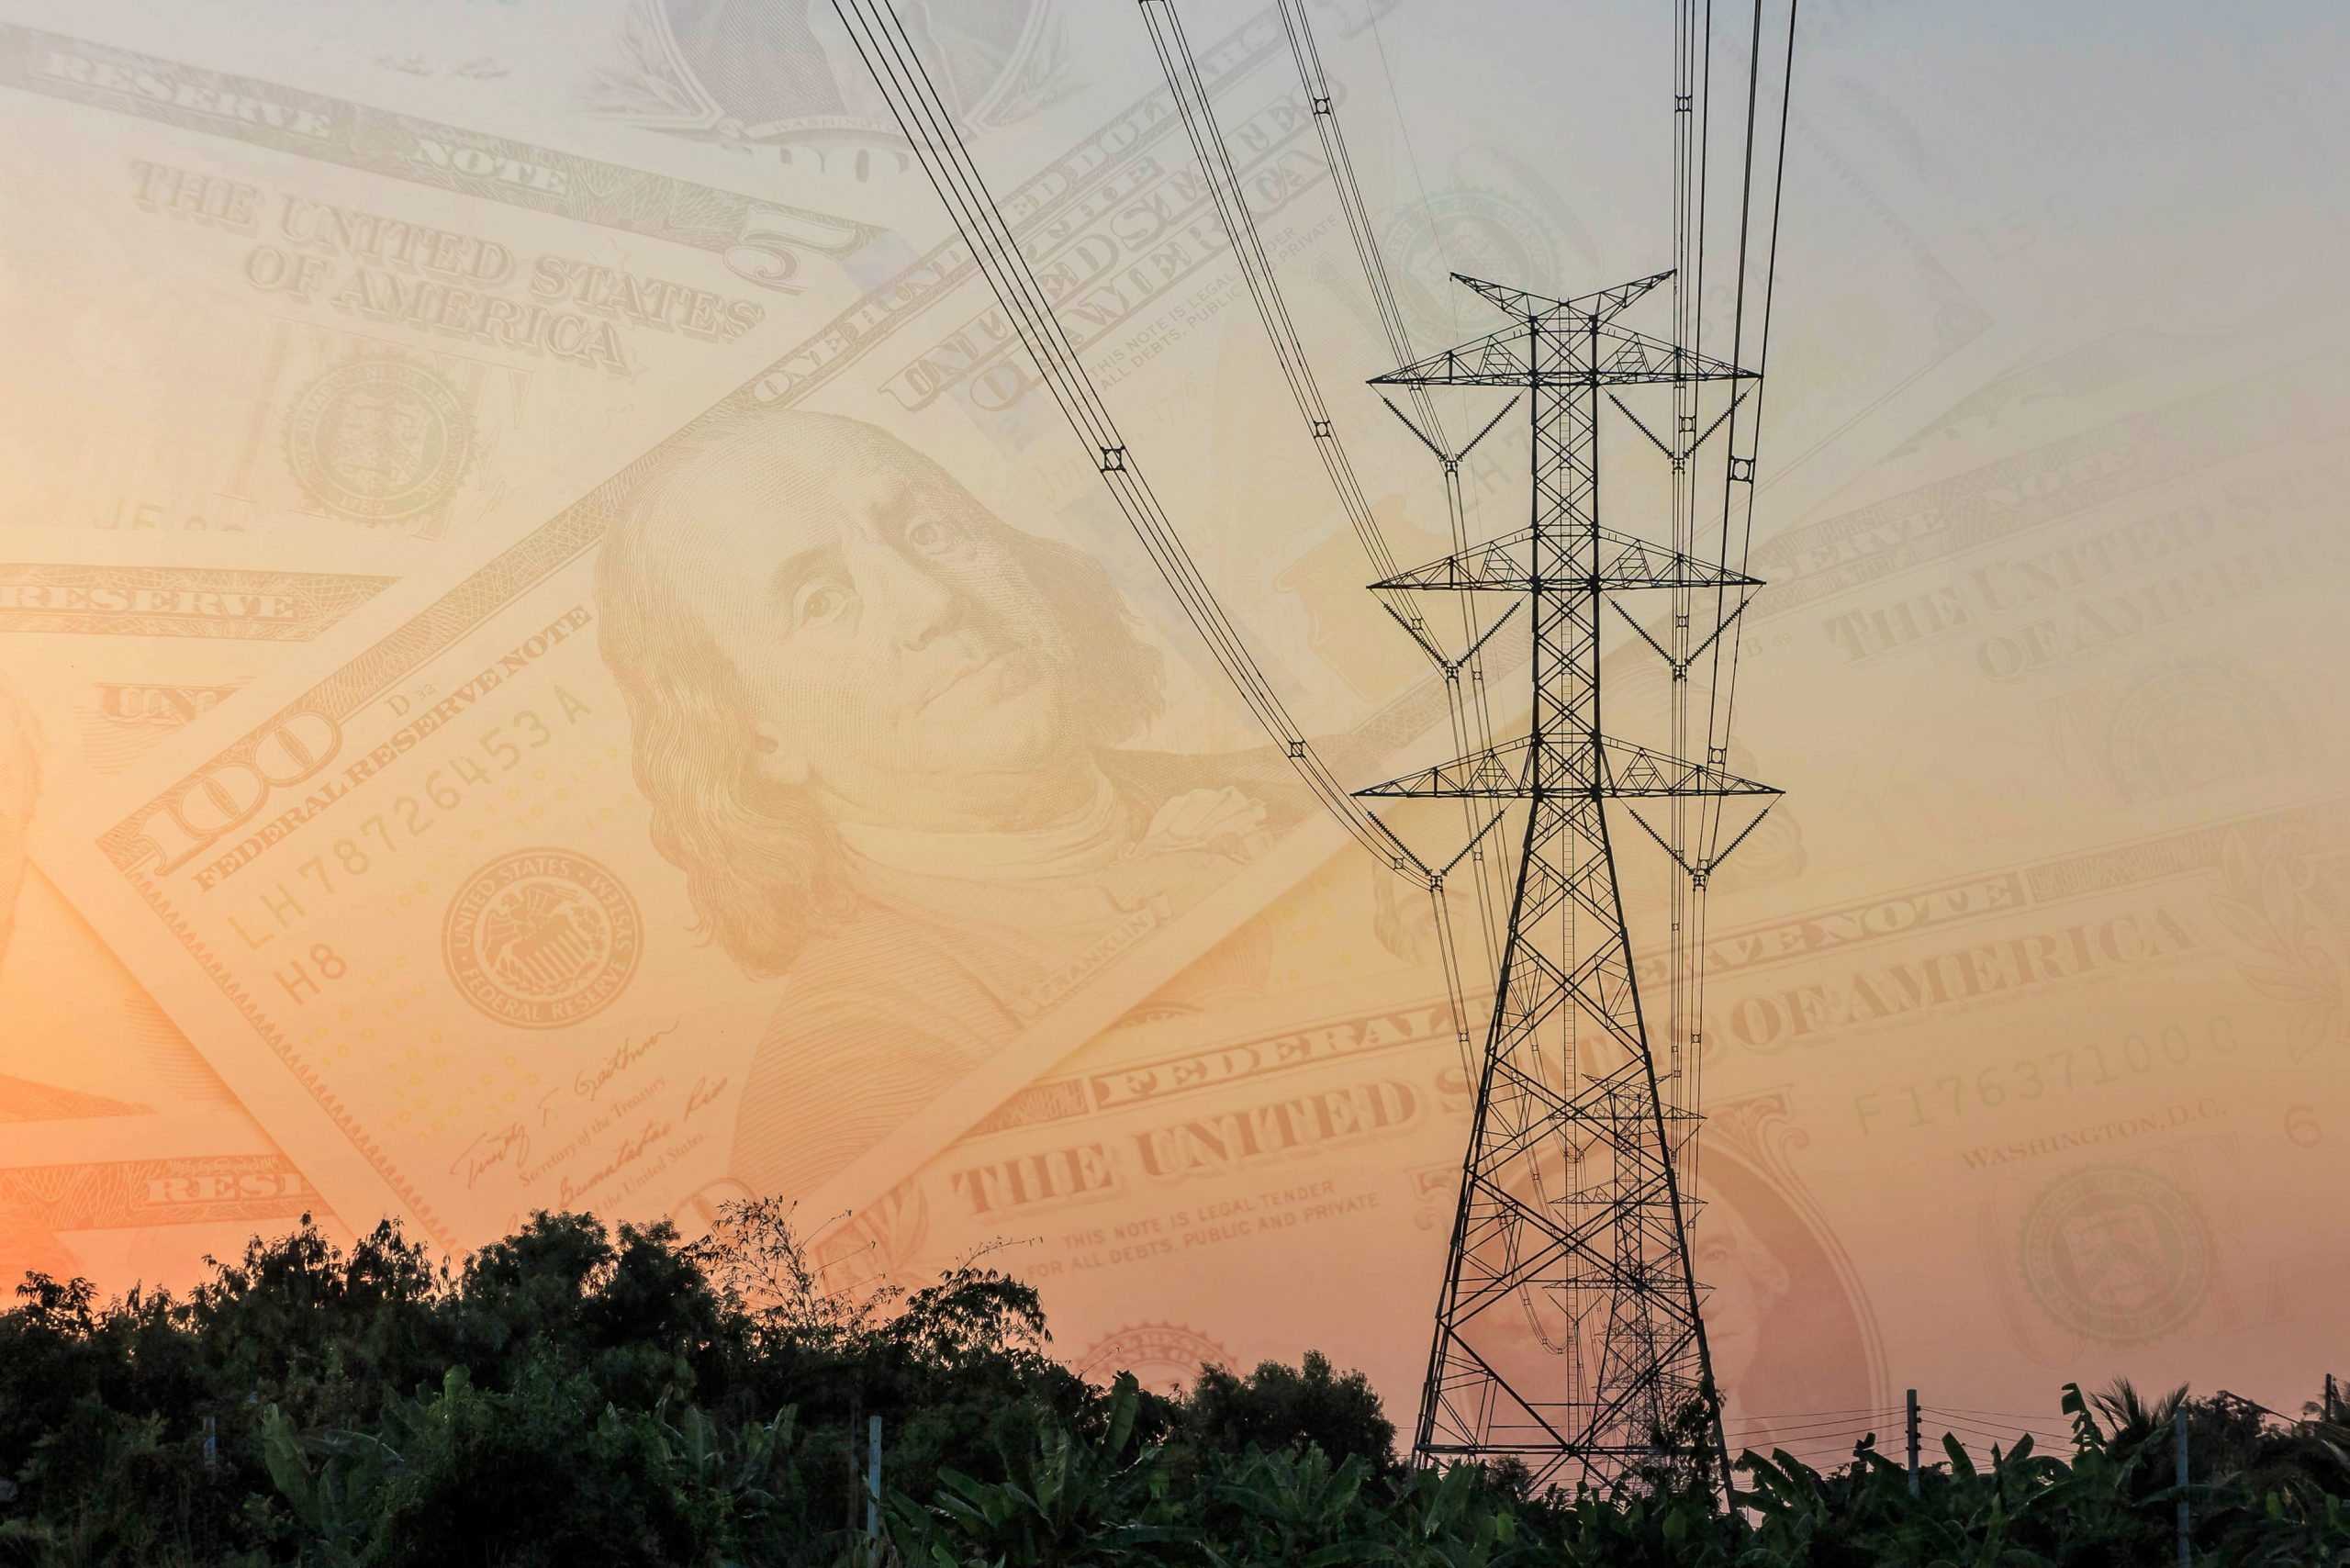 Electricity tower and electric line and dollar cash background, Electricity spending, Electricity infrastructure investment, Urbanization concept, double exposure